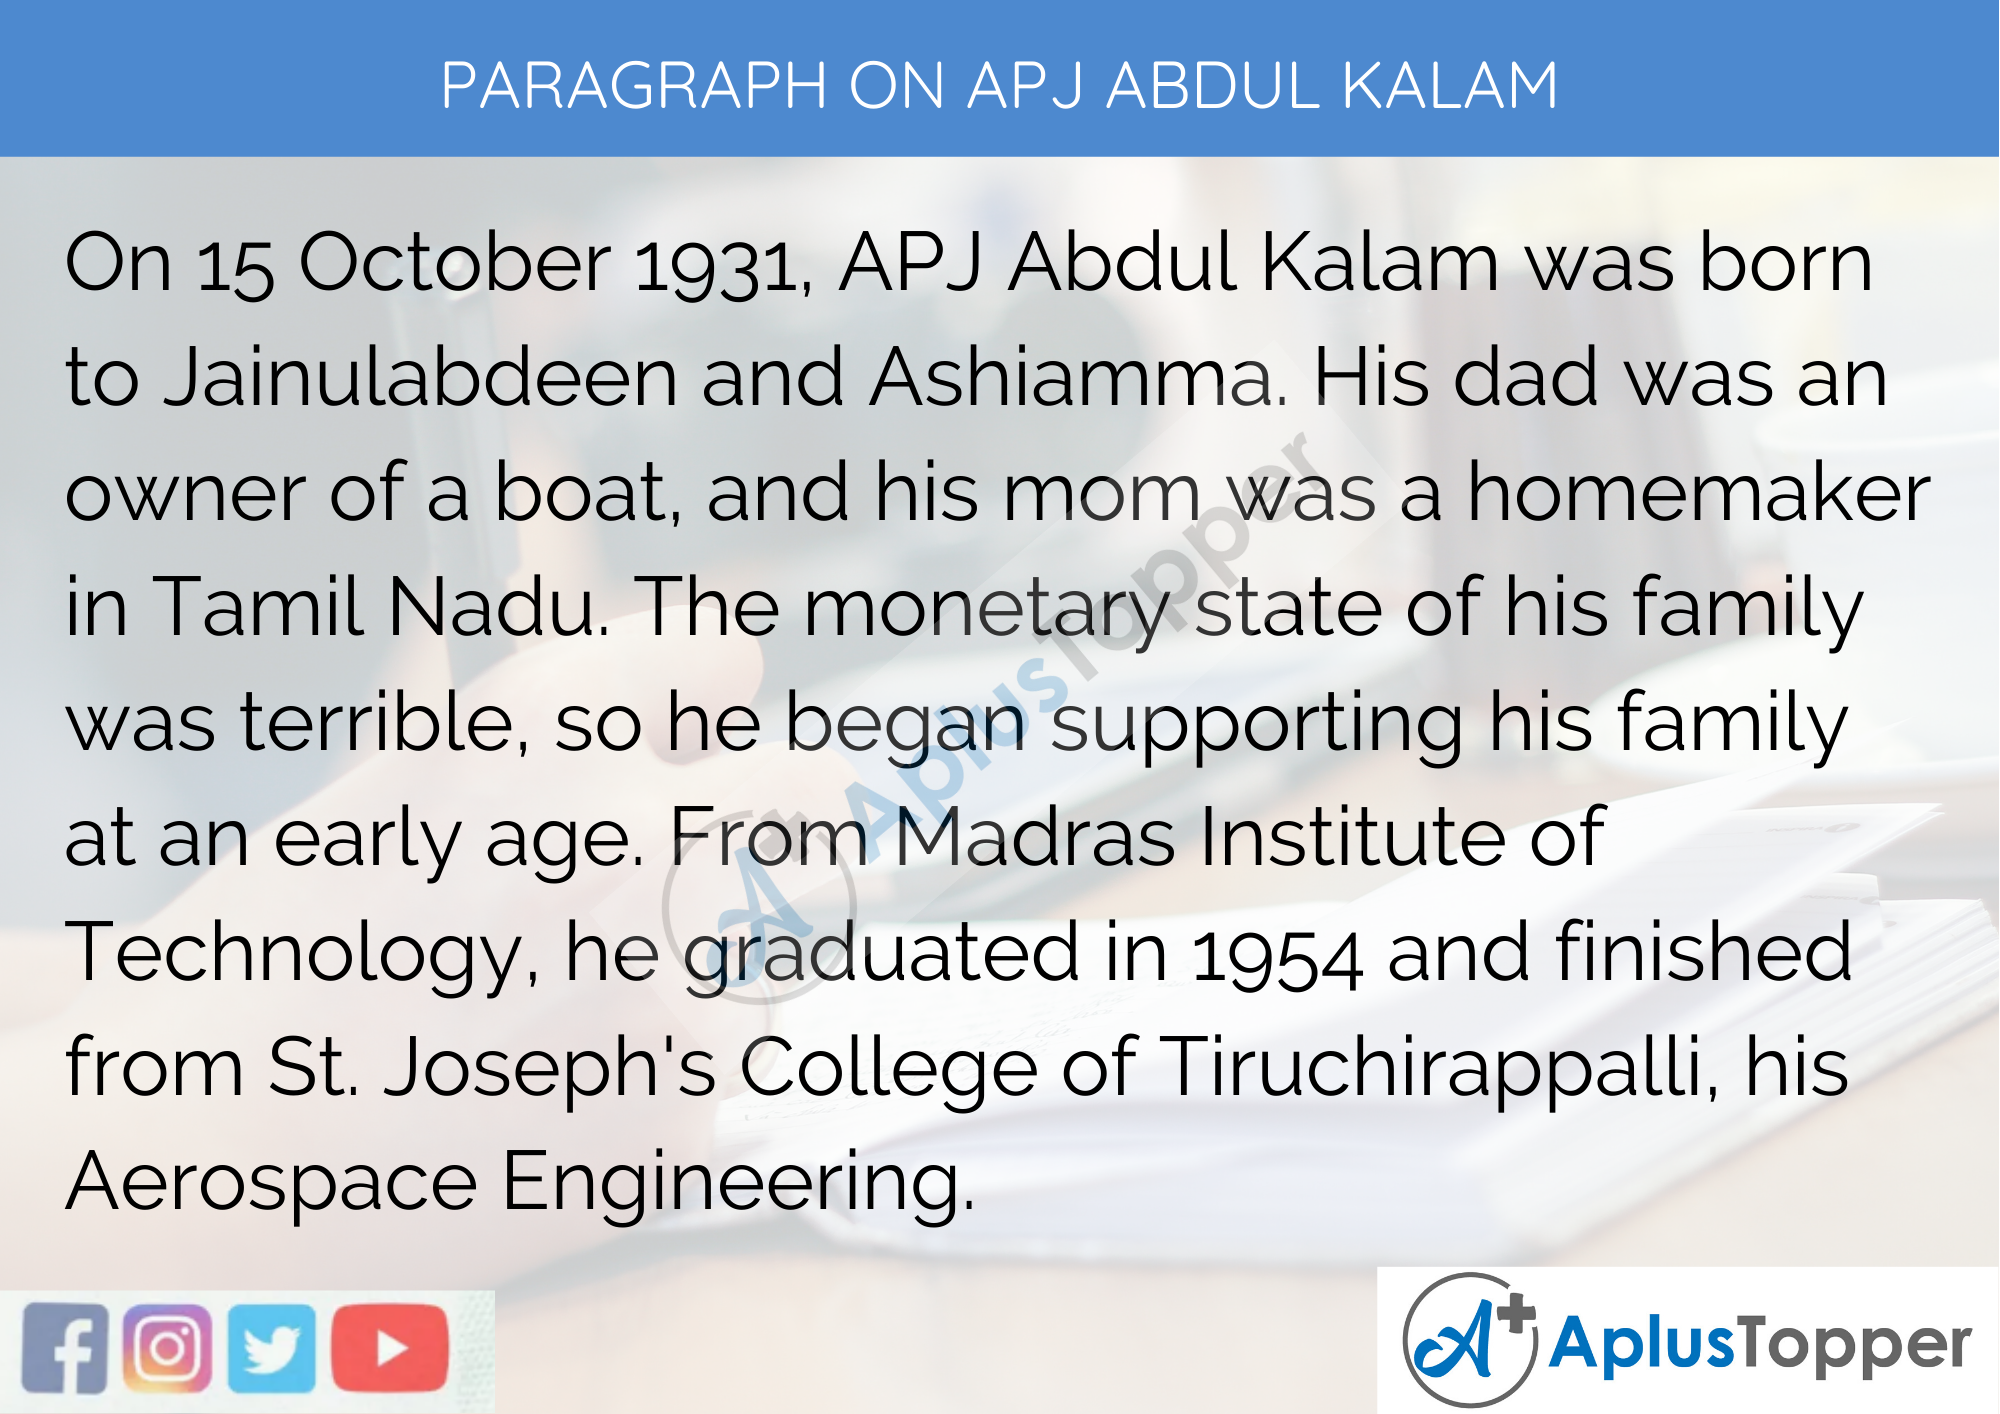 Paragraph On APJ Abdul Kalam - 250 to 300 Words for Classes 9, 10, 11, 12 And Competitive Exams Students